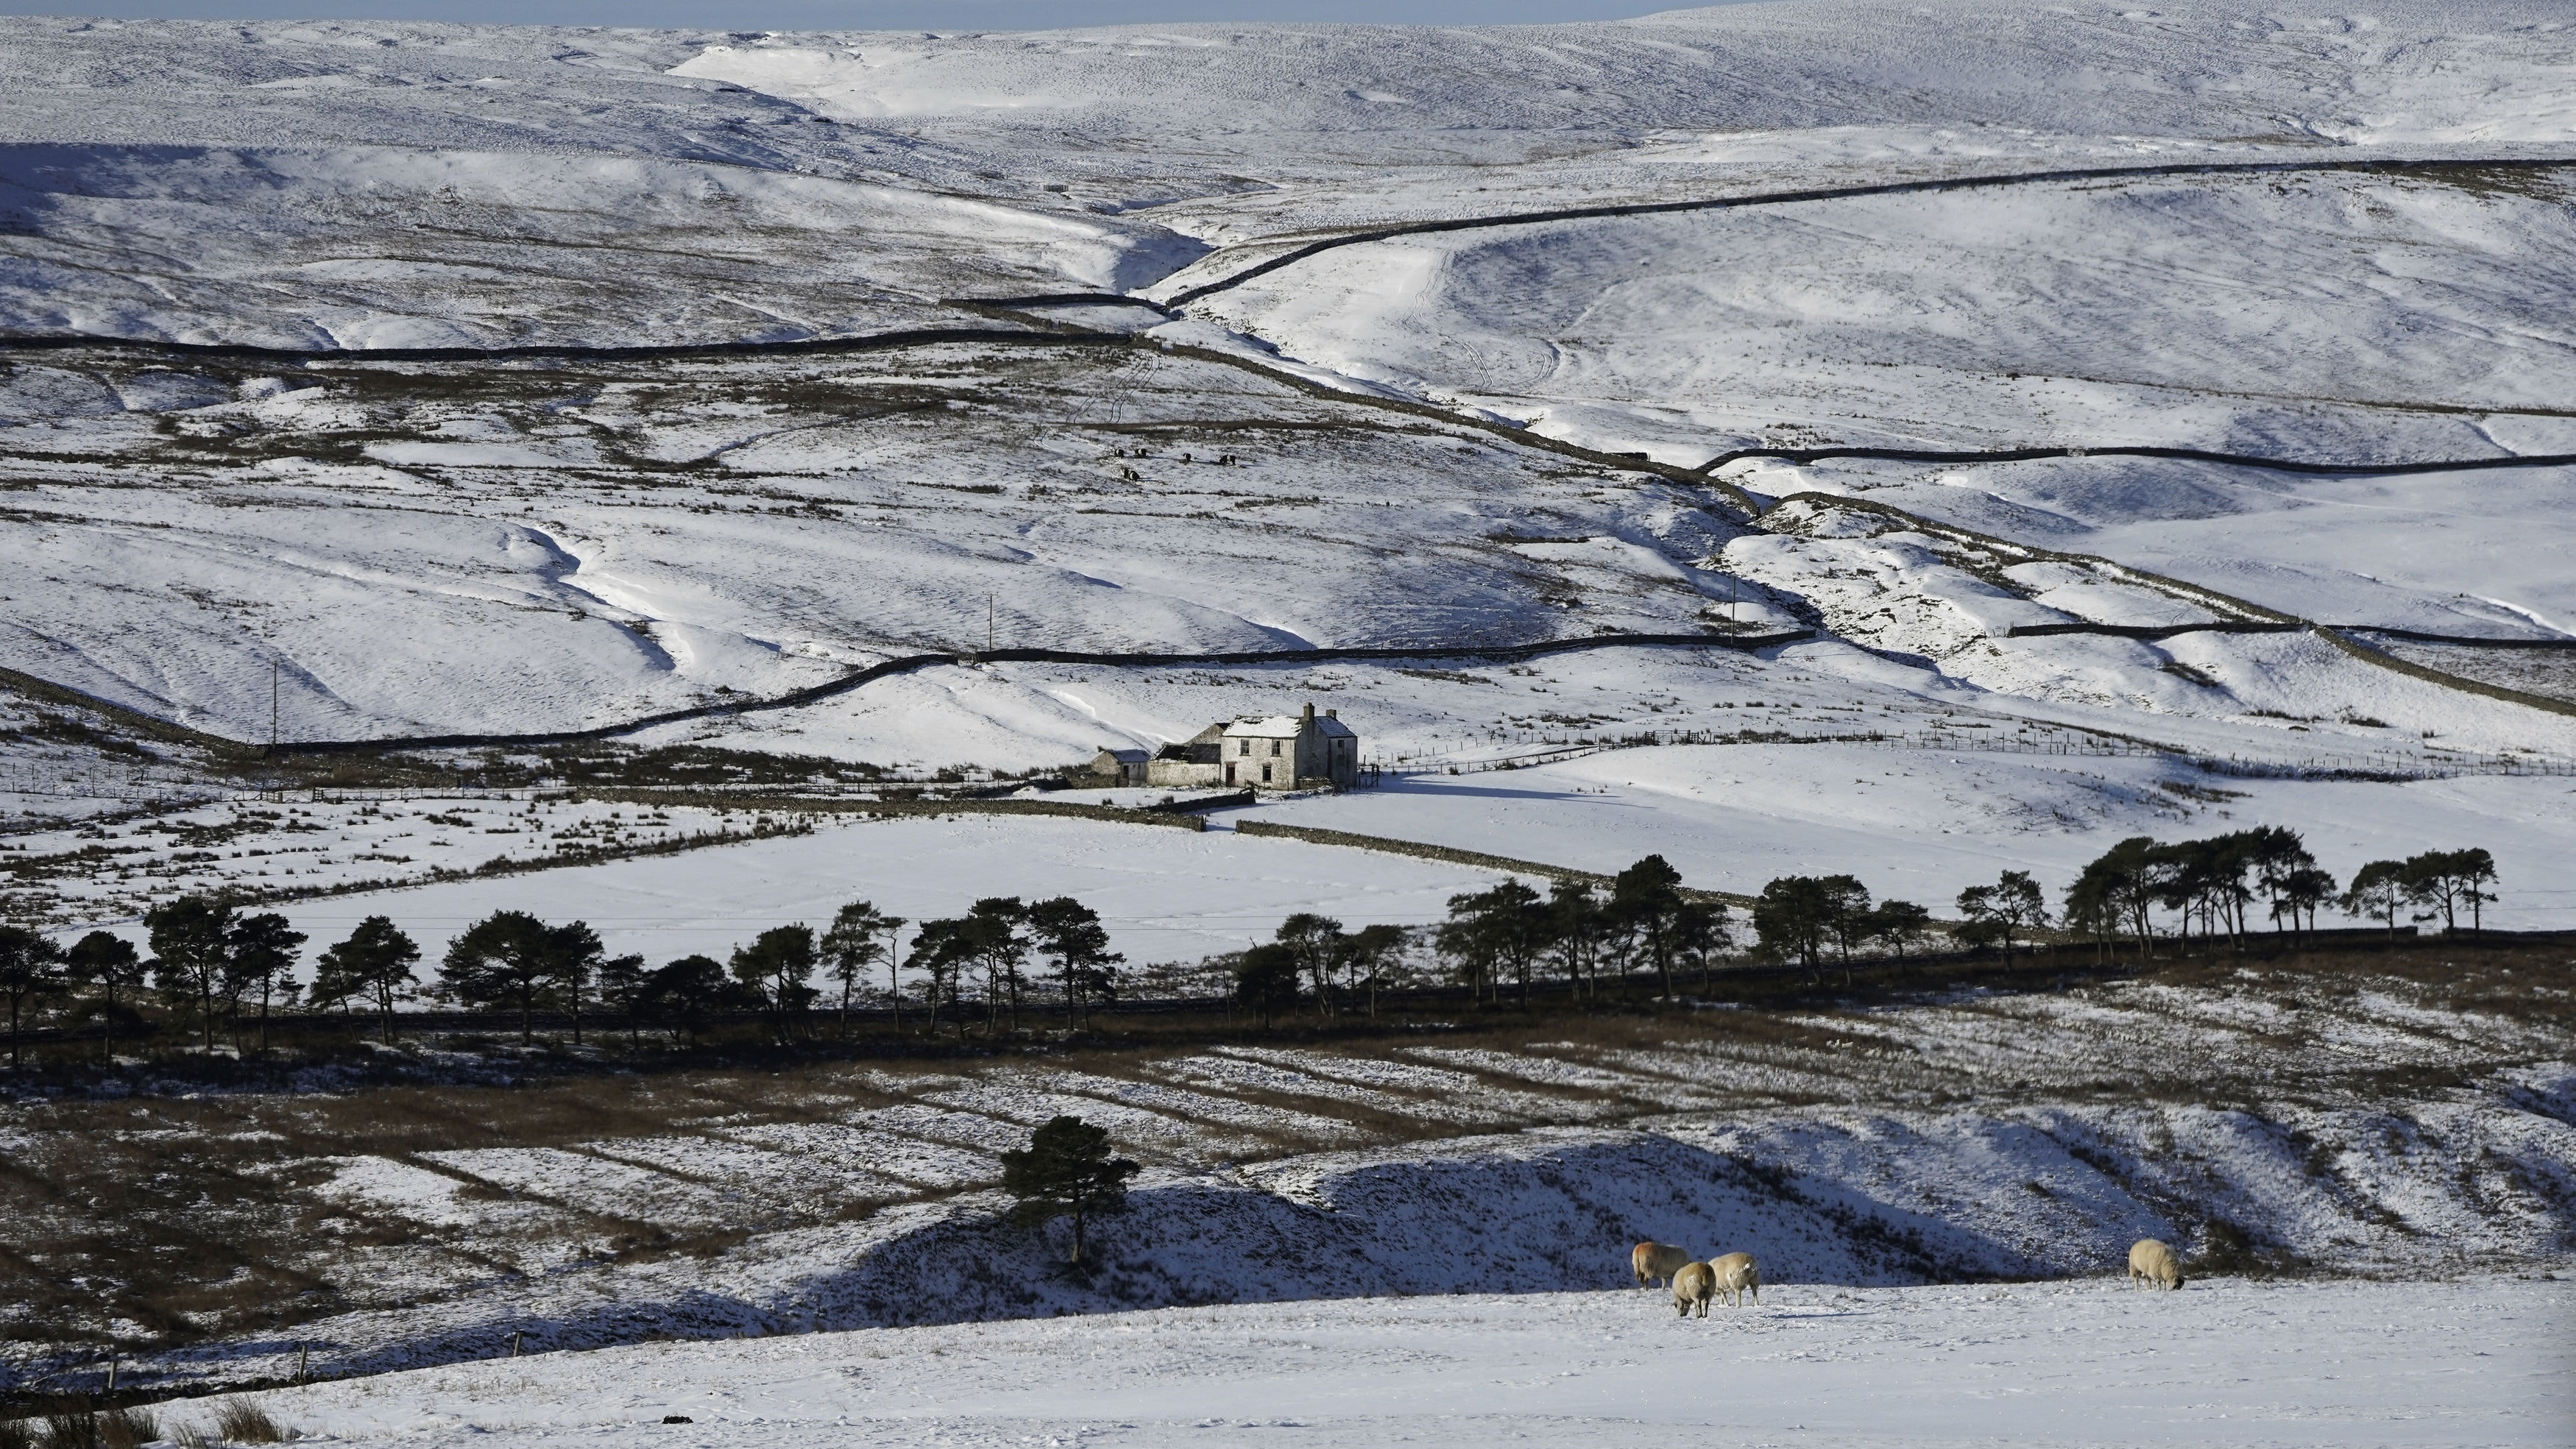 Weather warning: Rain, sleet and snow on the cards for the weekend